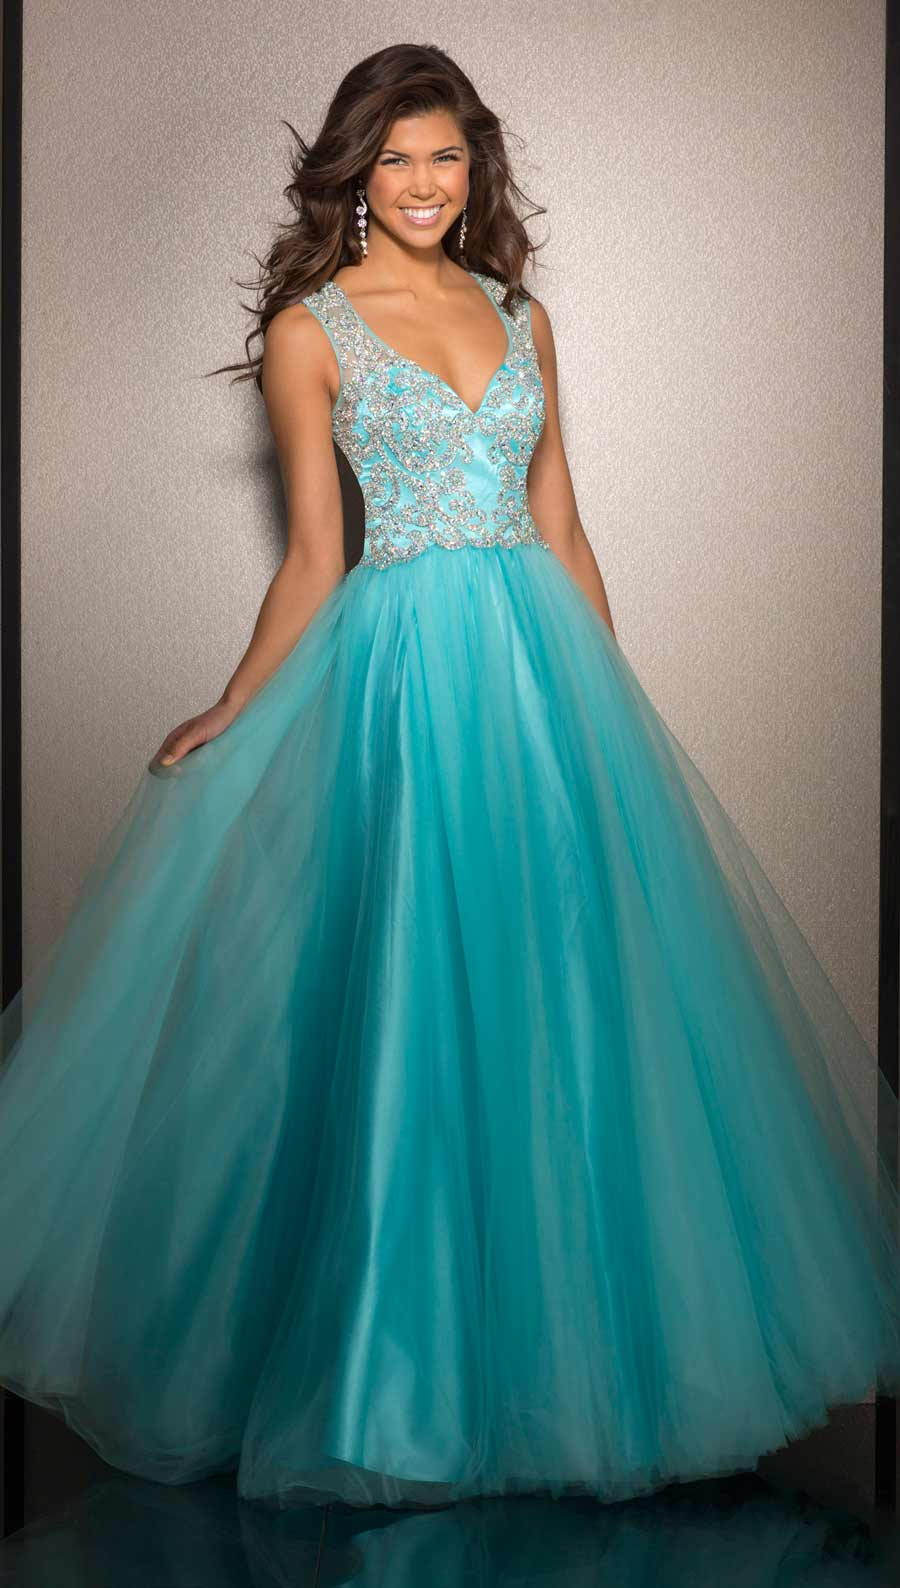 Clarisse Turquoise Ball Gown 2638 | Promgirl.net